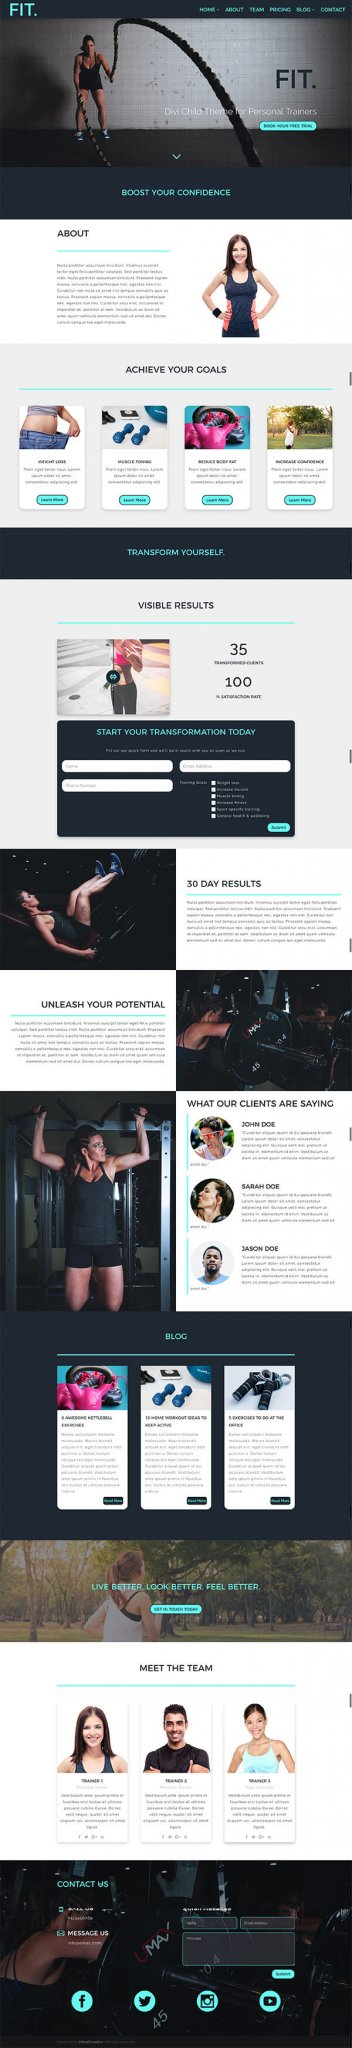 Fit - Divi Child Theme for Personal Trainers